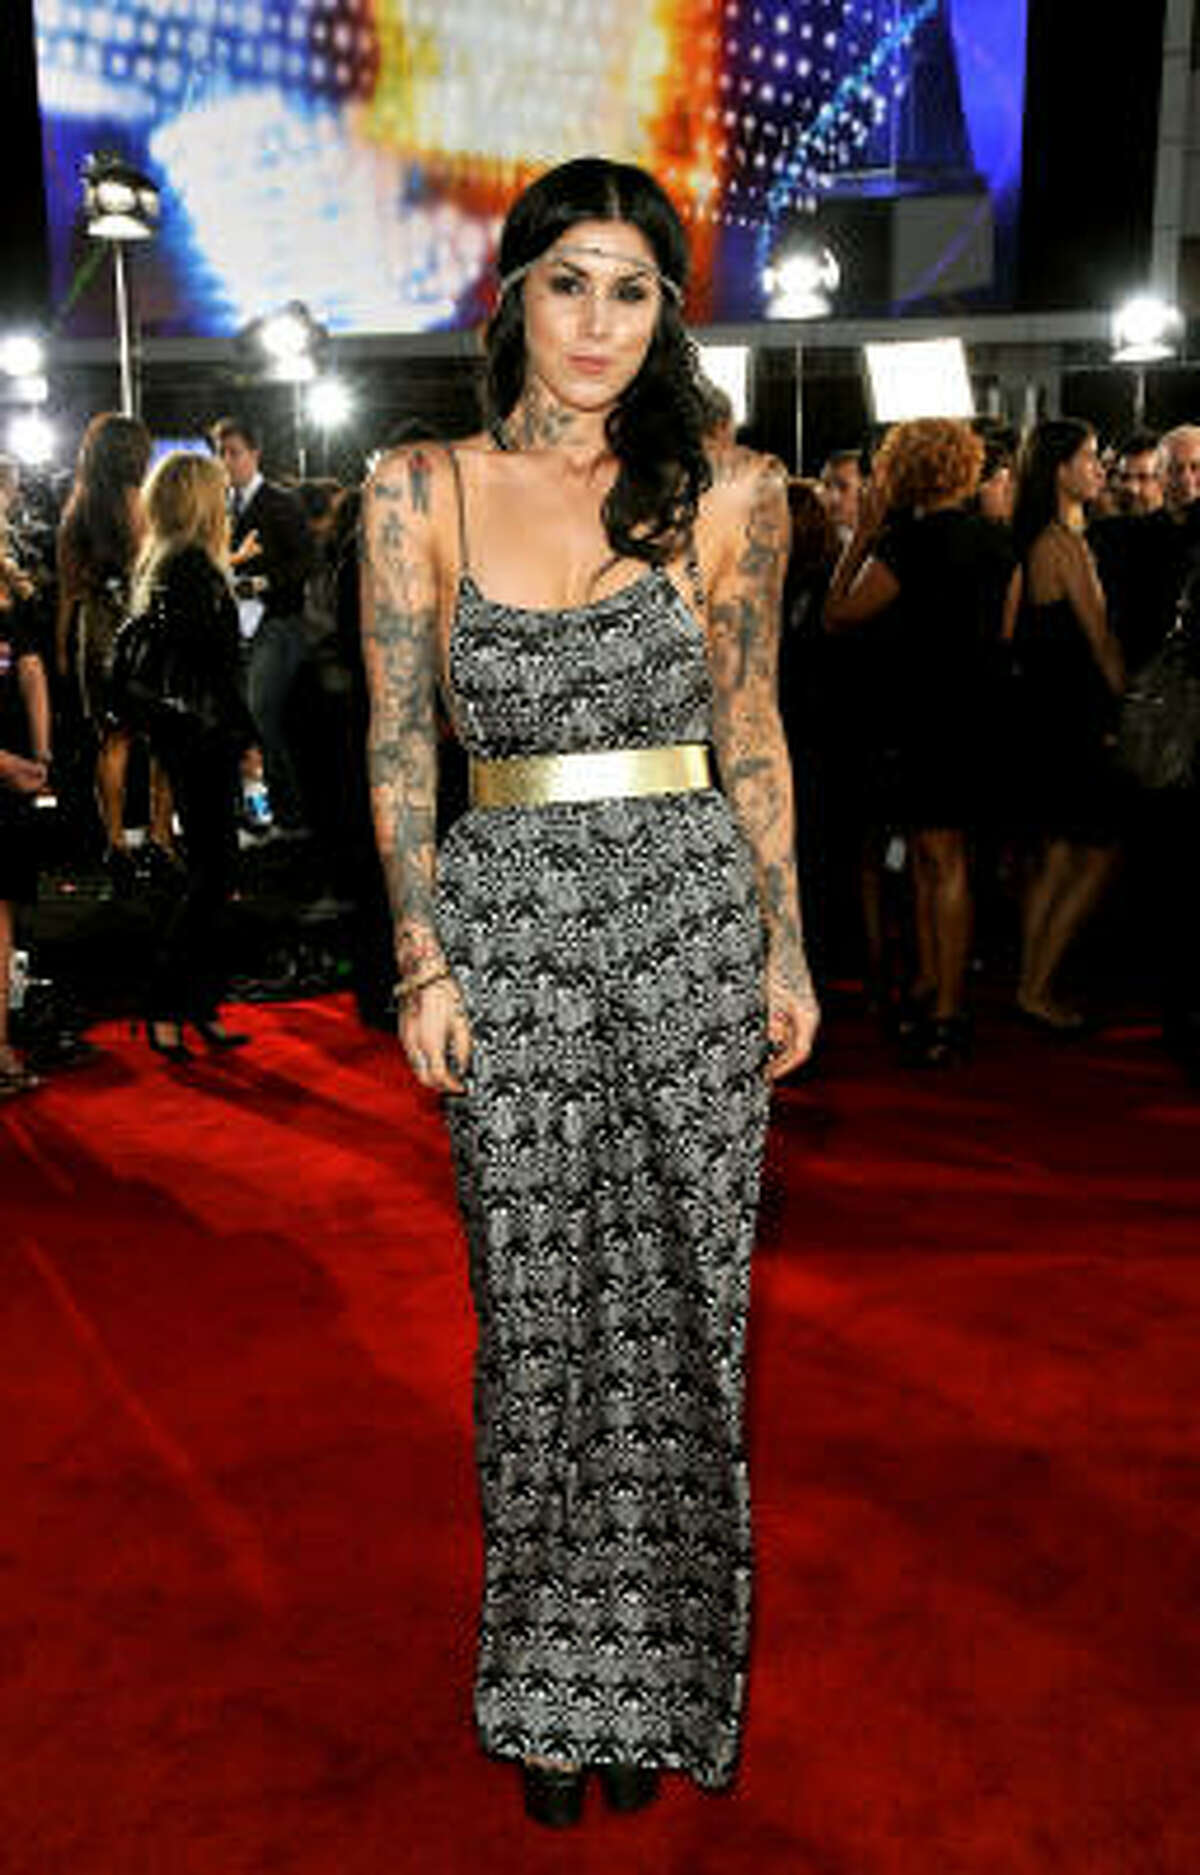 Kat Von D stars in LA Ink and a spinoff, Miami Ink. She also is offering a new line of makeup at Sephora.